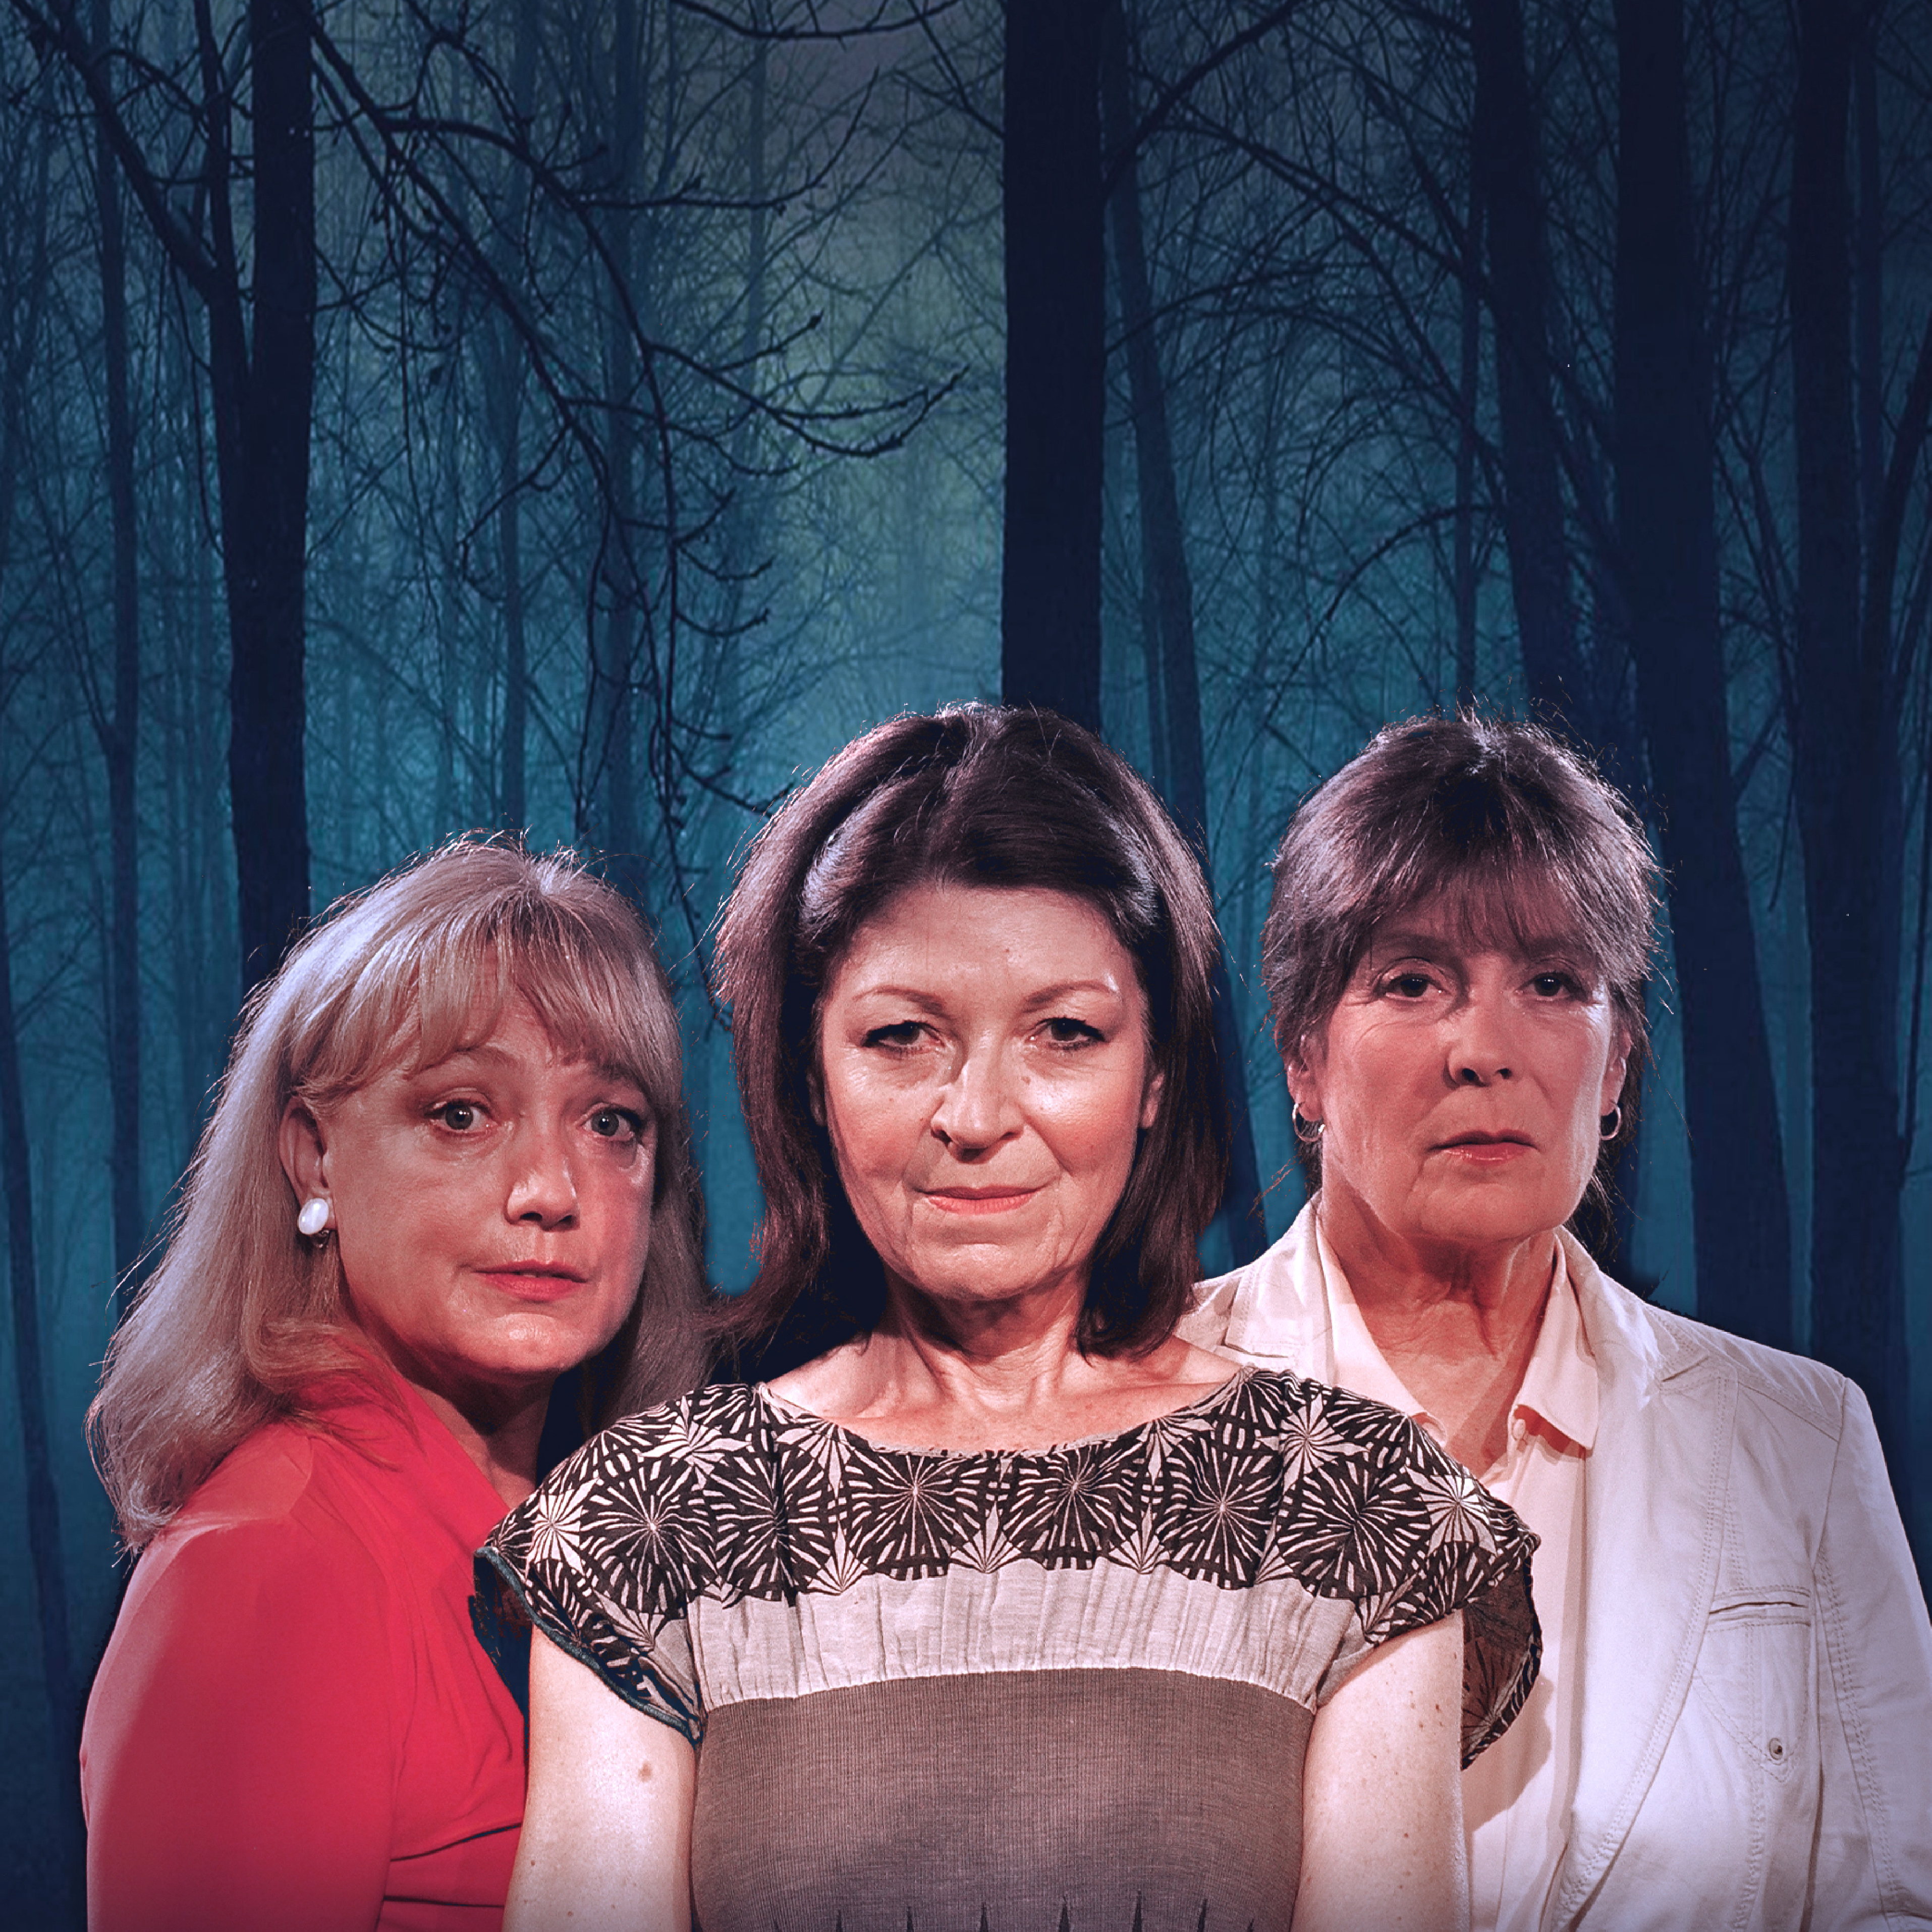 SNAKE IN THE GRASS - SANKE IN THE GRASS – MATINEE